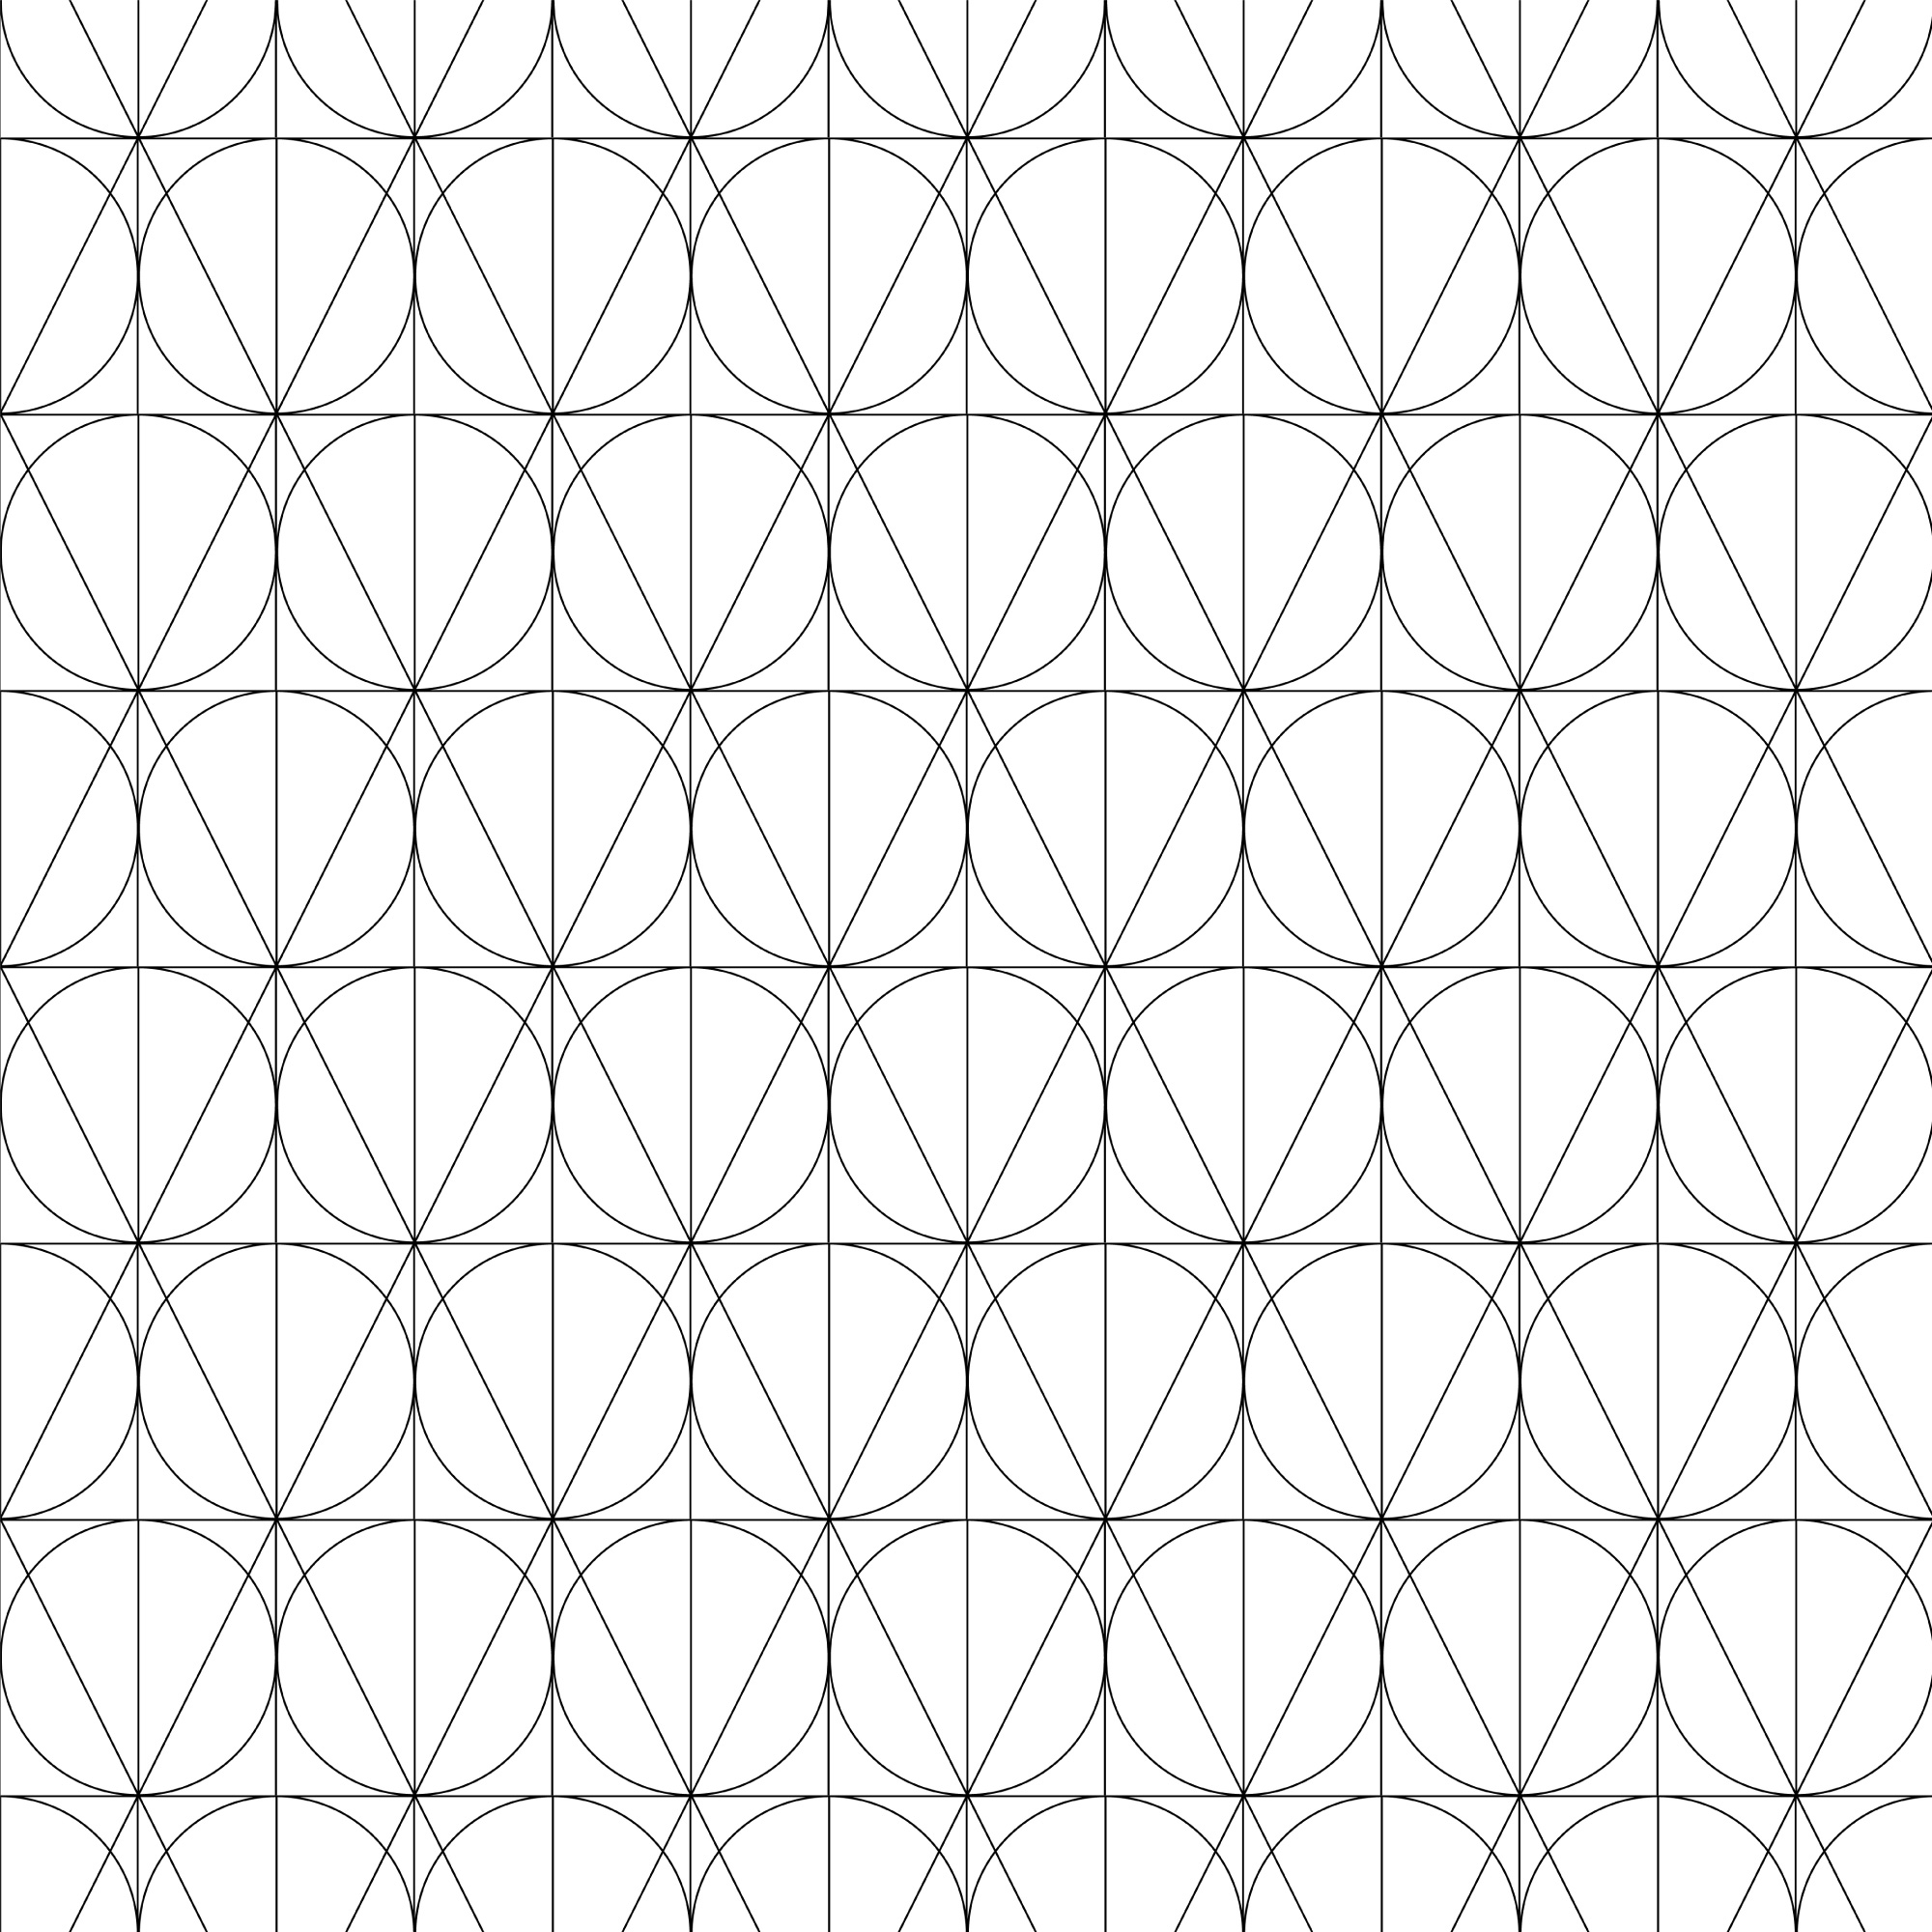 Elegant Gift Wrap Recyclable Gift Wrap Wrapping Paper Sheets Geowire Gift Wrap Pattern Gift Wrap Black and White Gift Wrap